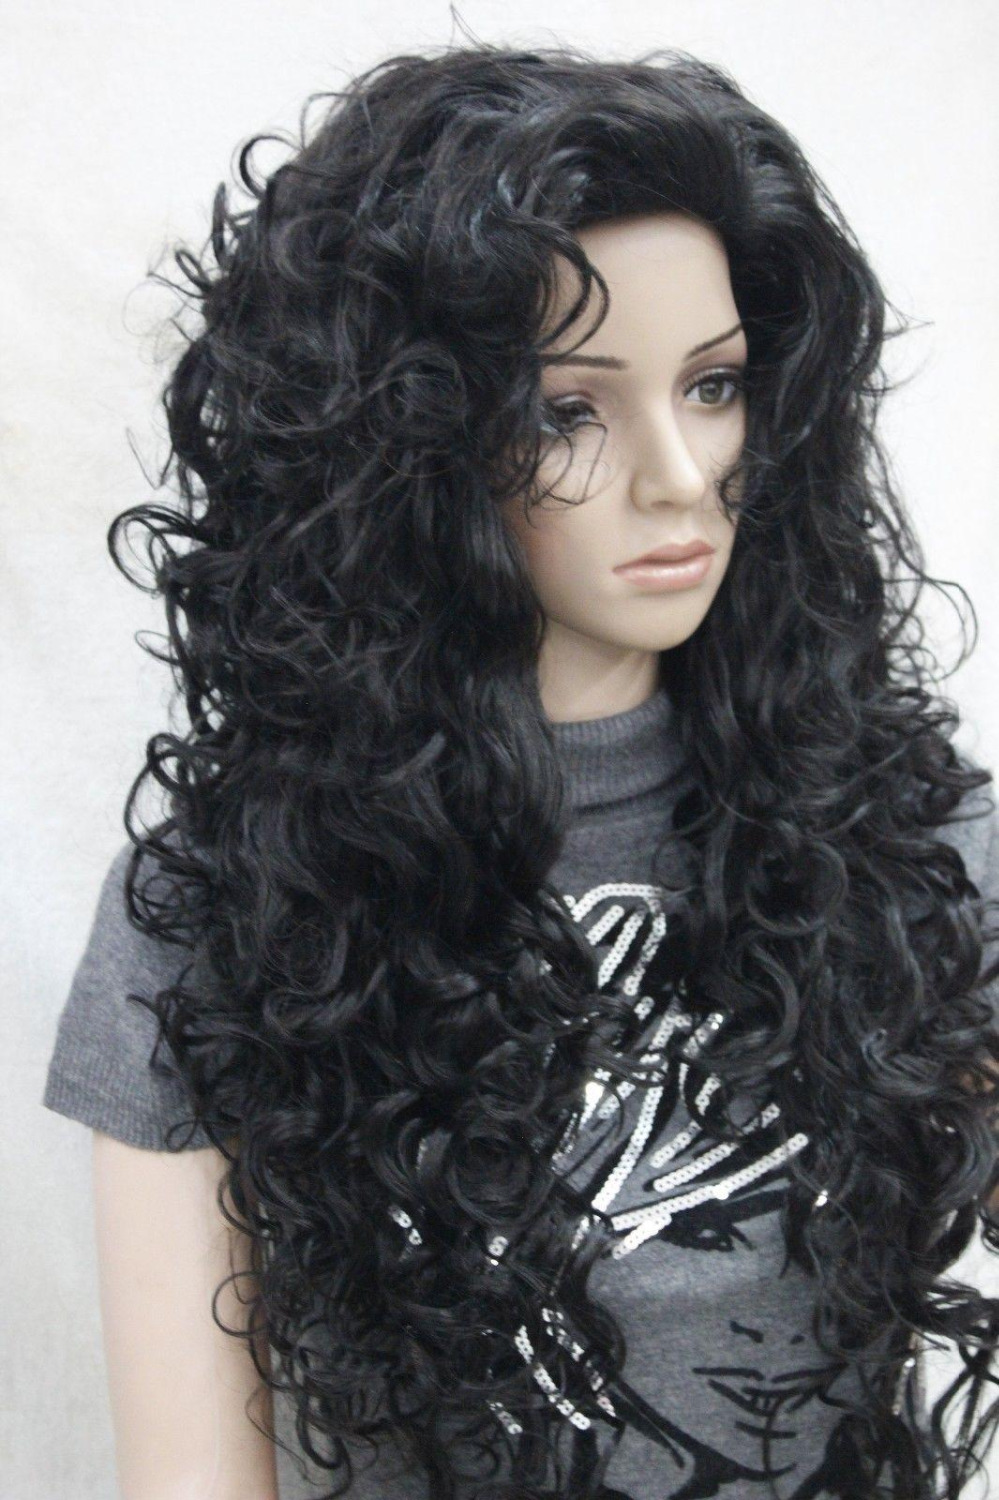 100% Brand New High Quality Fashion Picture full lace wigs>>2015 fashion sexy off black 30 long messy curls woman's full женское платье fashion 2015 fashion 2015